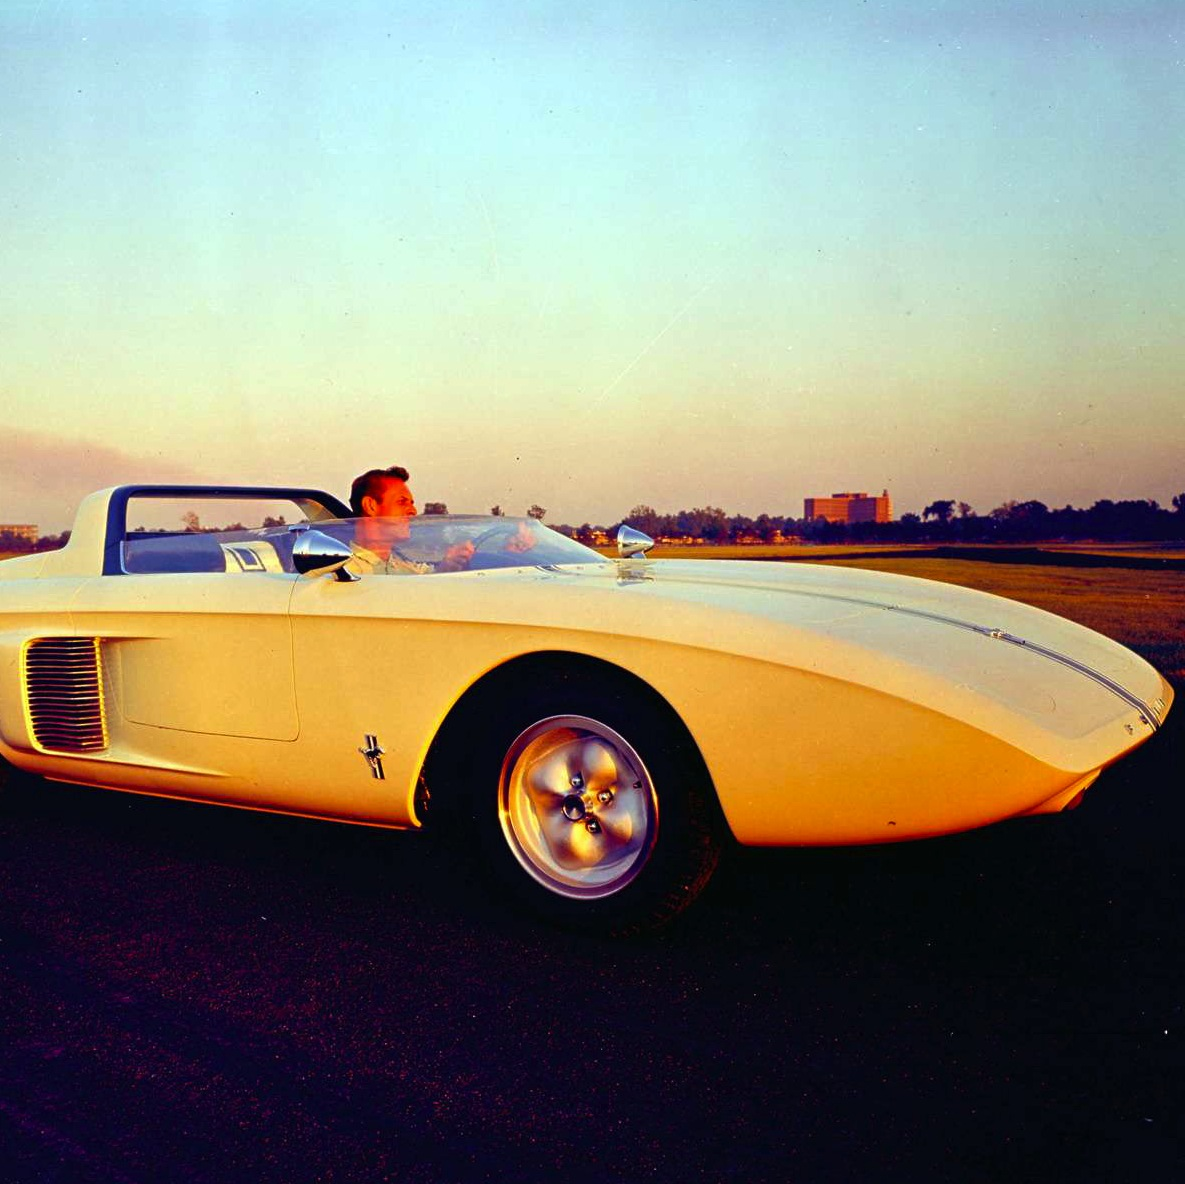 Ford Mustang Roadster Concept Car 19621 Top 11 Features of 2011